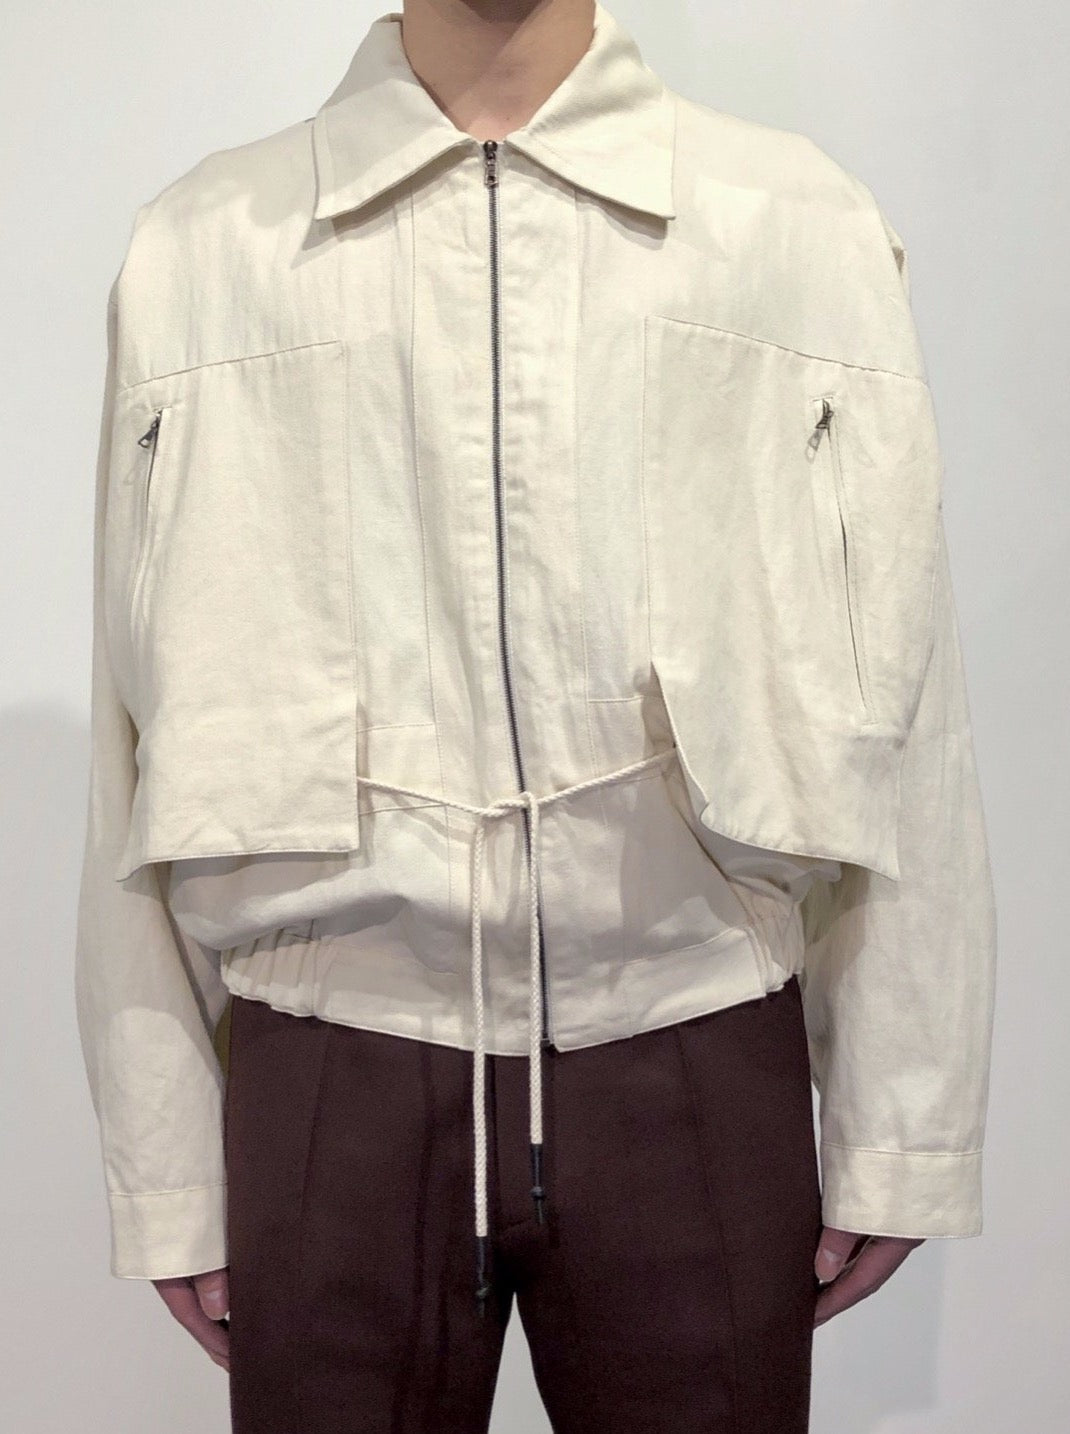 BLOUSON WITH PATCH POCKETS